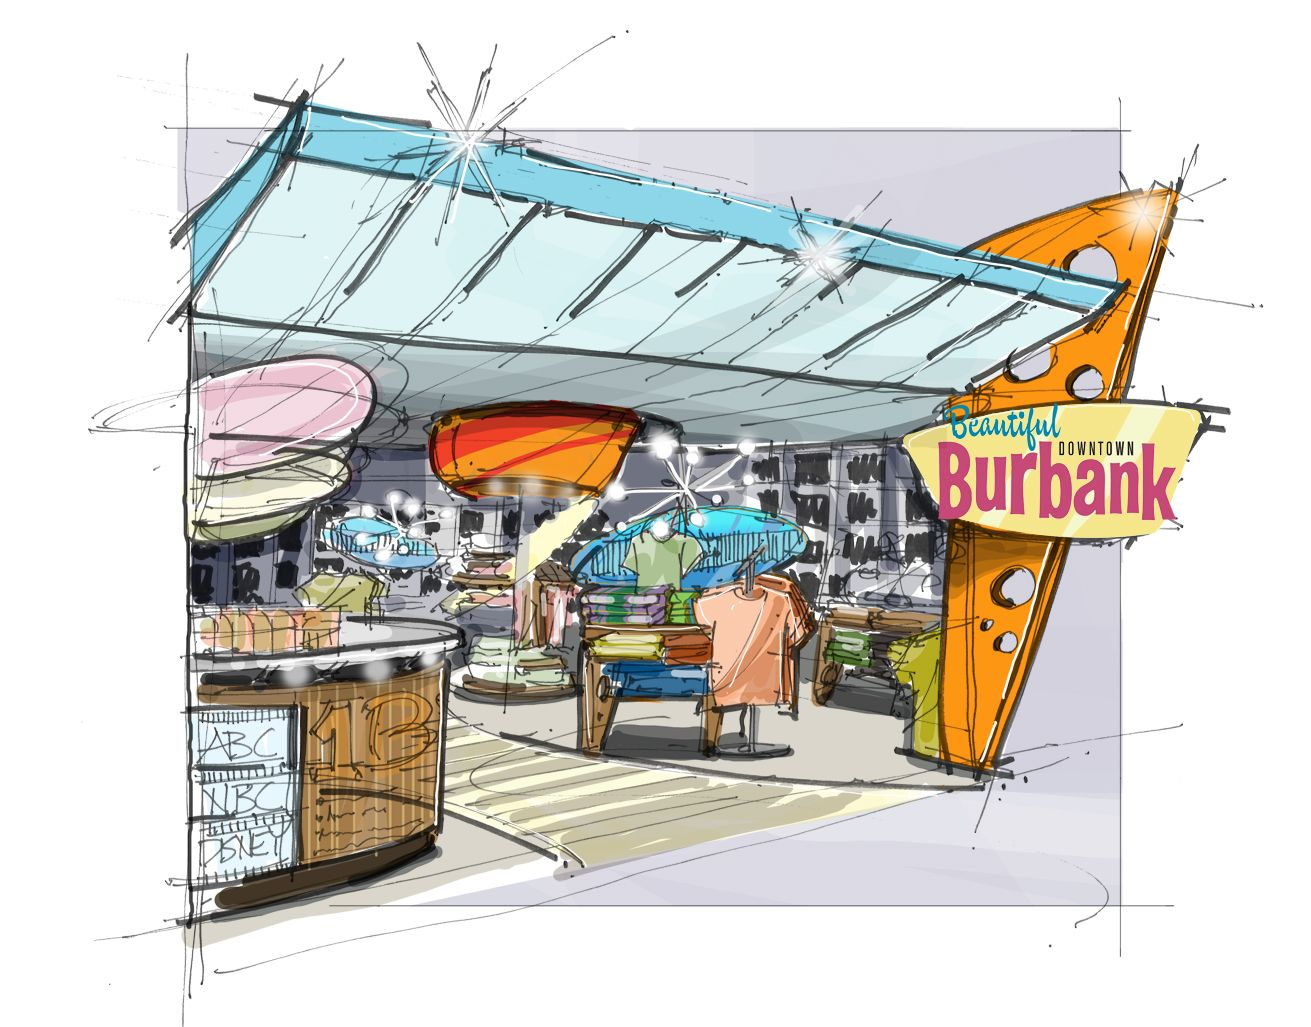 hight resolution of burbank chamber of commerce by shawn gworek